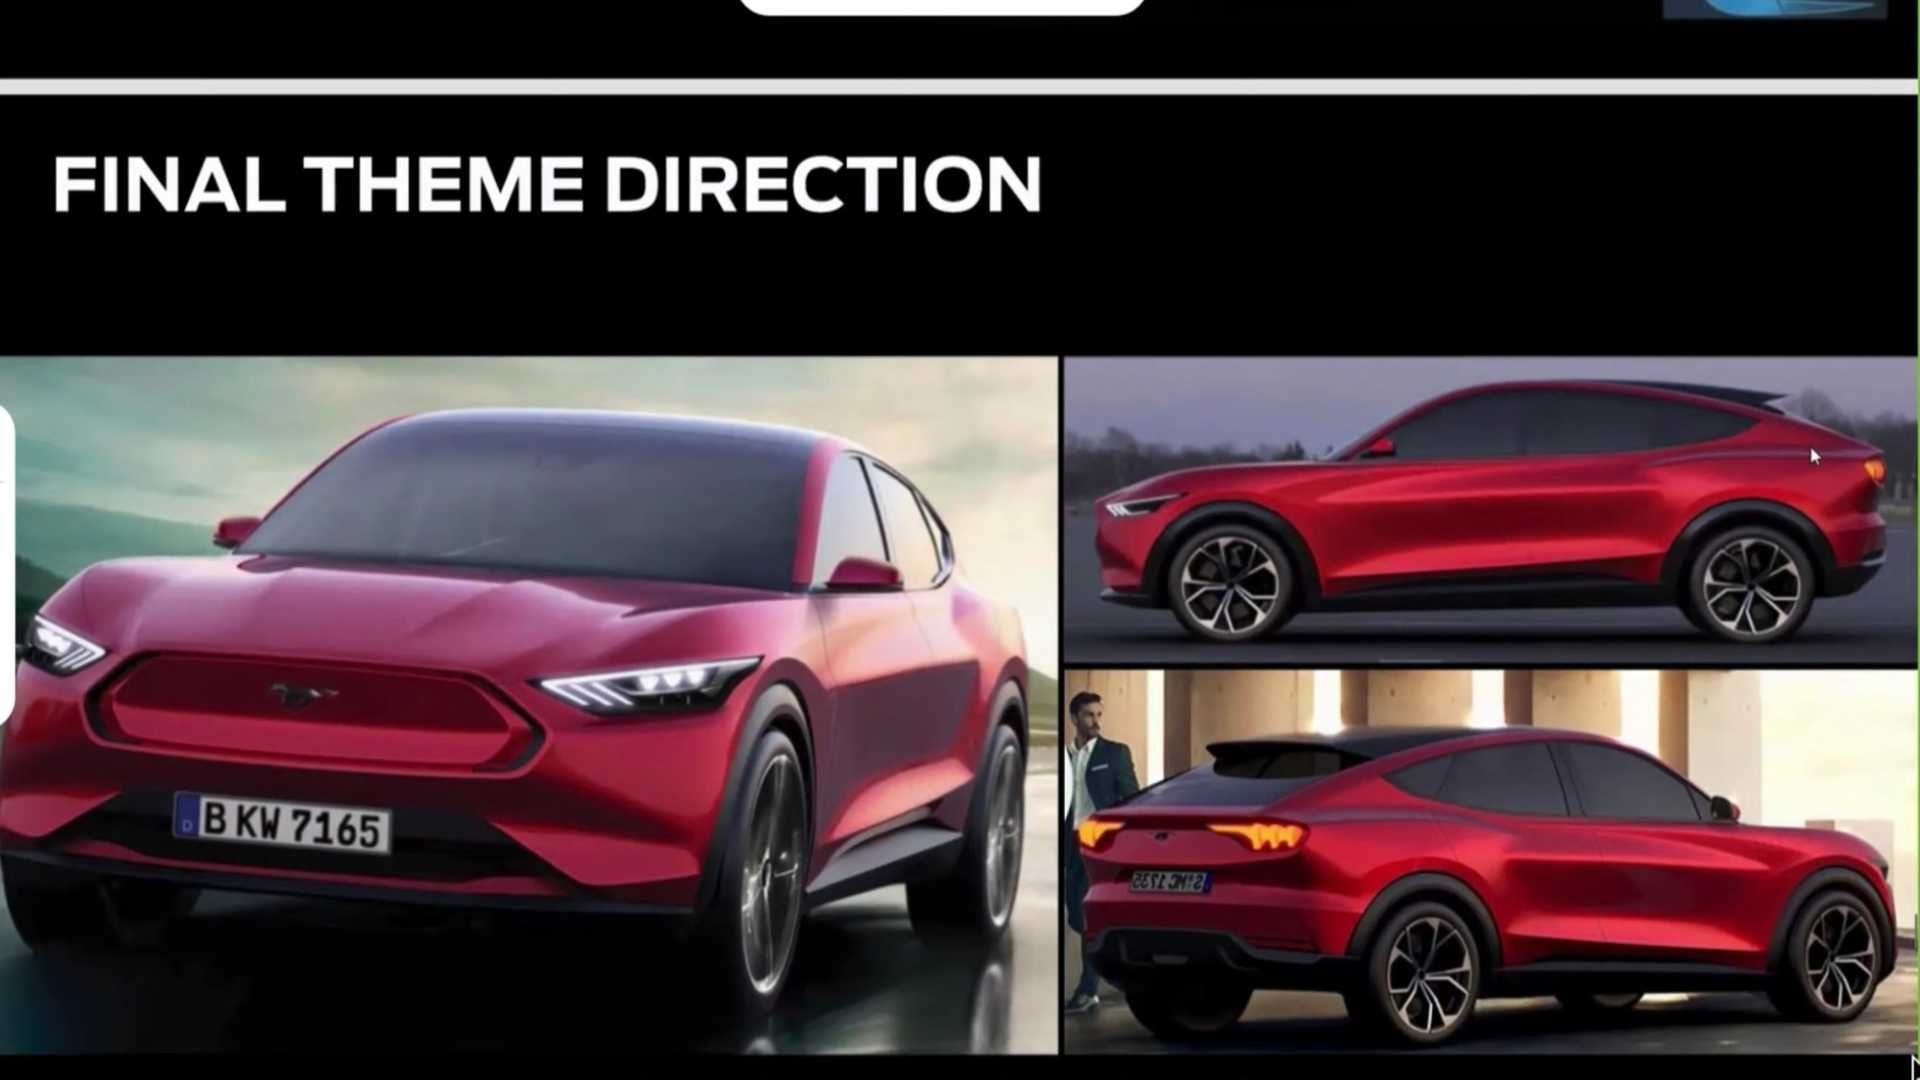 Ford-Mustang-Mach-E-Design-Process-Presentation-2